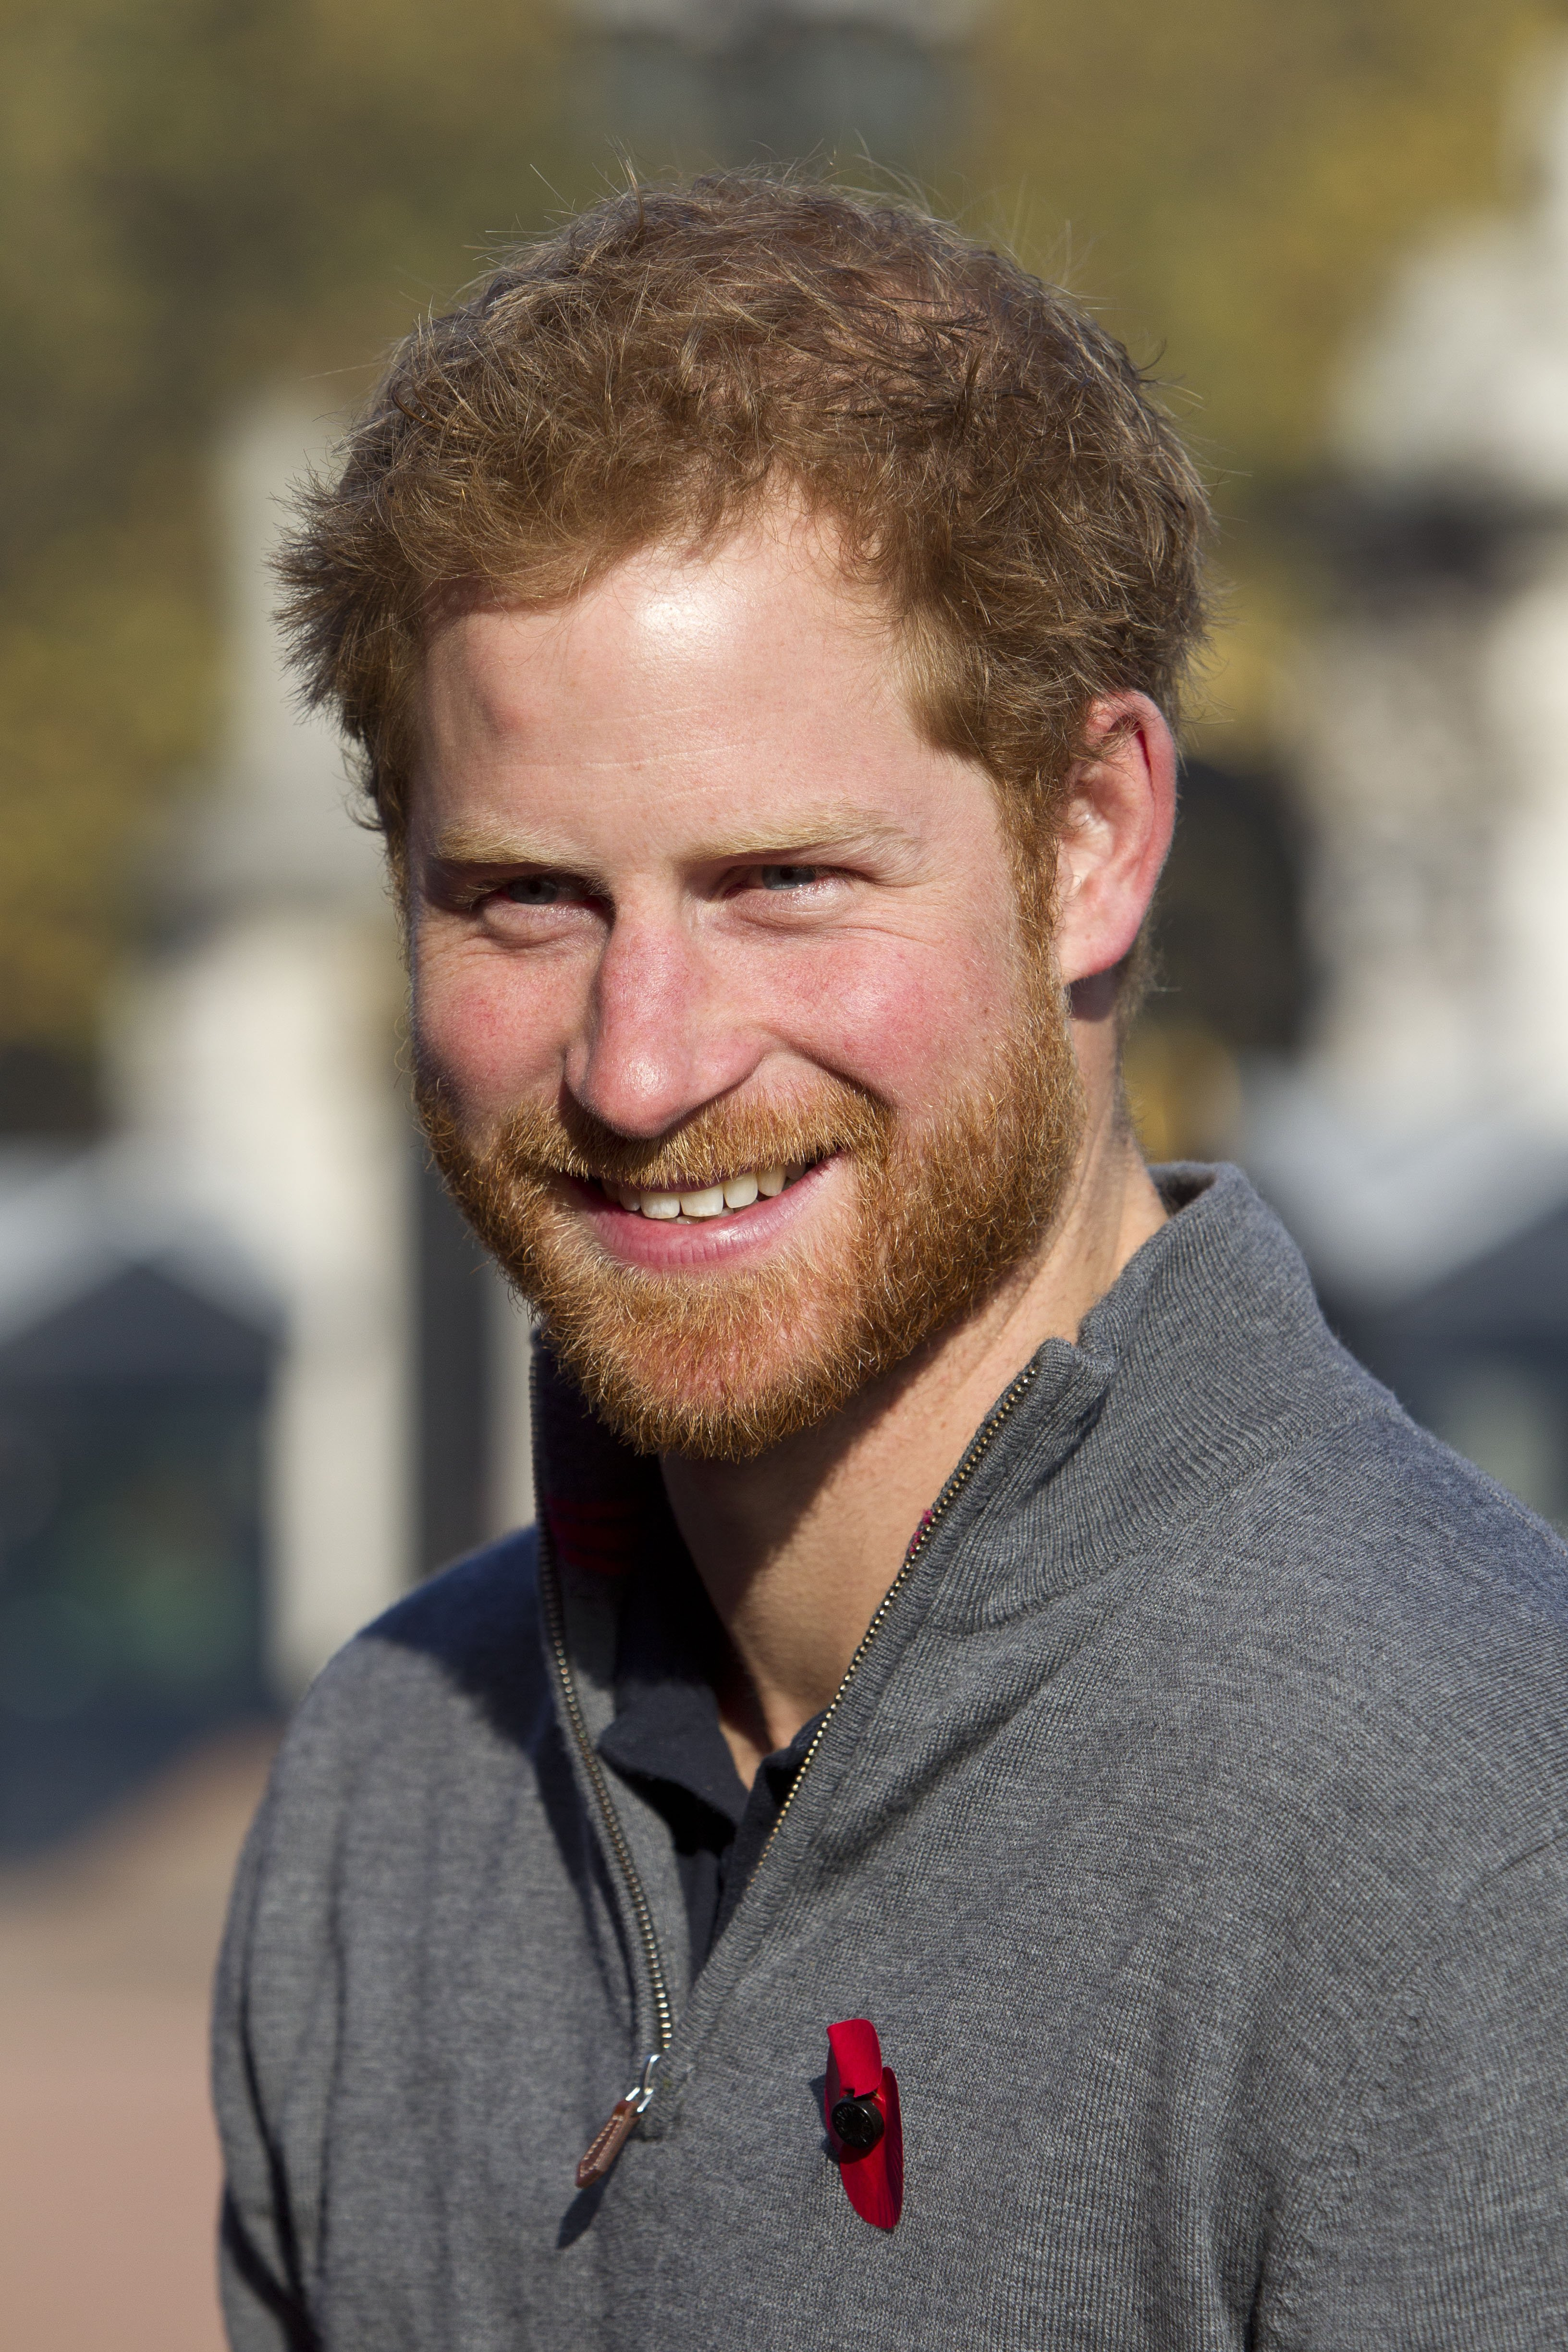 Prince Harry at the forecourt of Buckingham Palace on November 1, 2015 in London, England   Photo: Getty Images